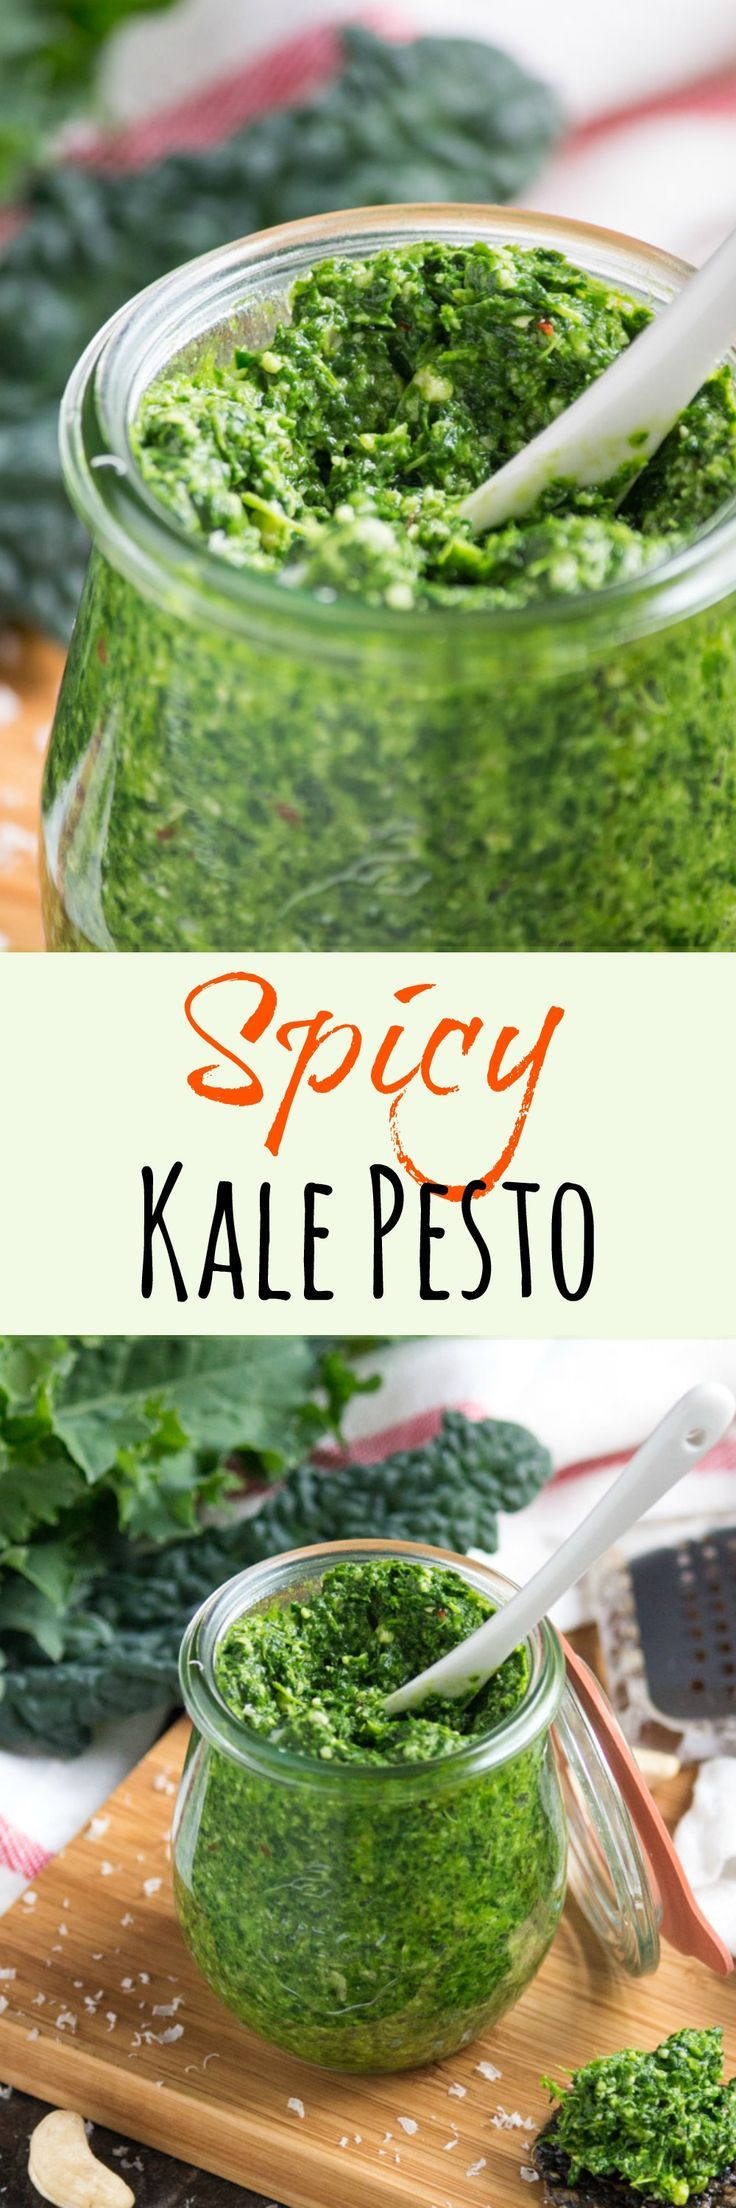 Spicy Kale Pesto.  Great stirred through pasta, served on crackers or eaten straight from the spoon.